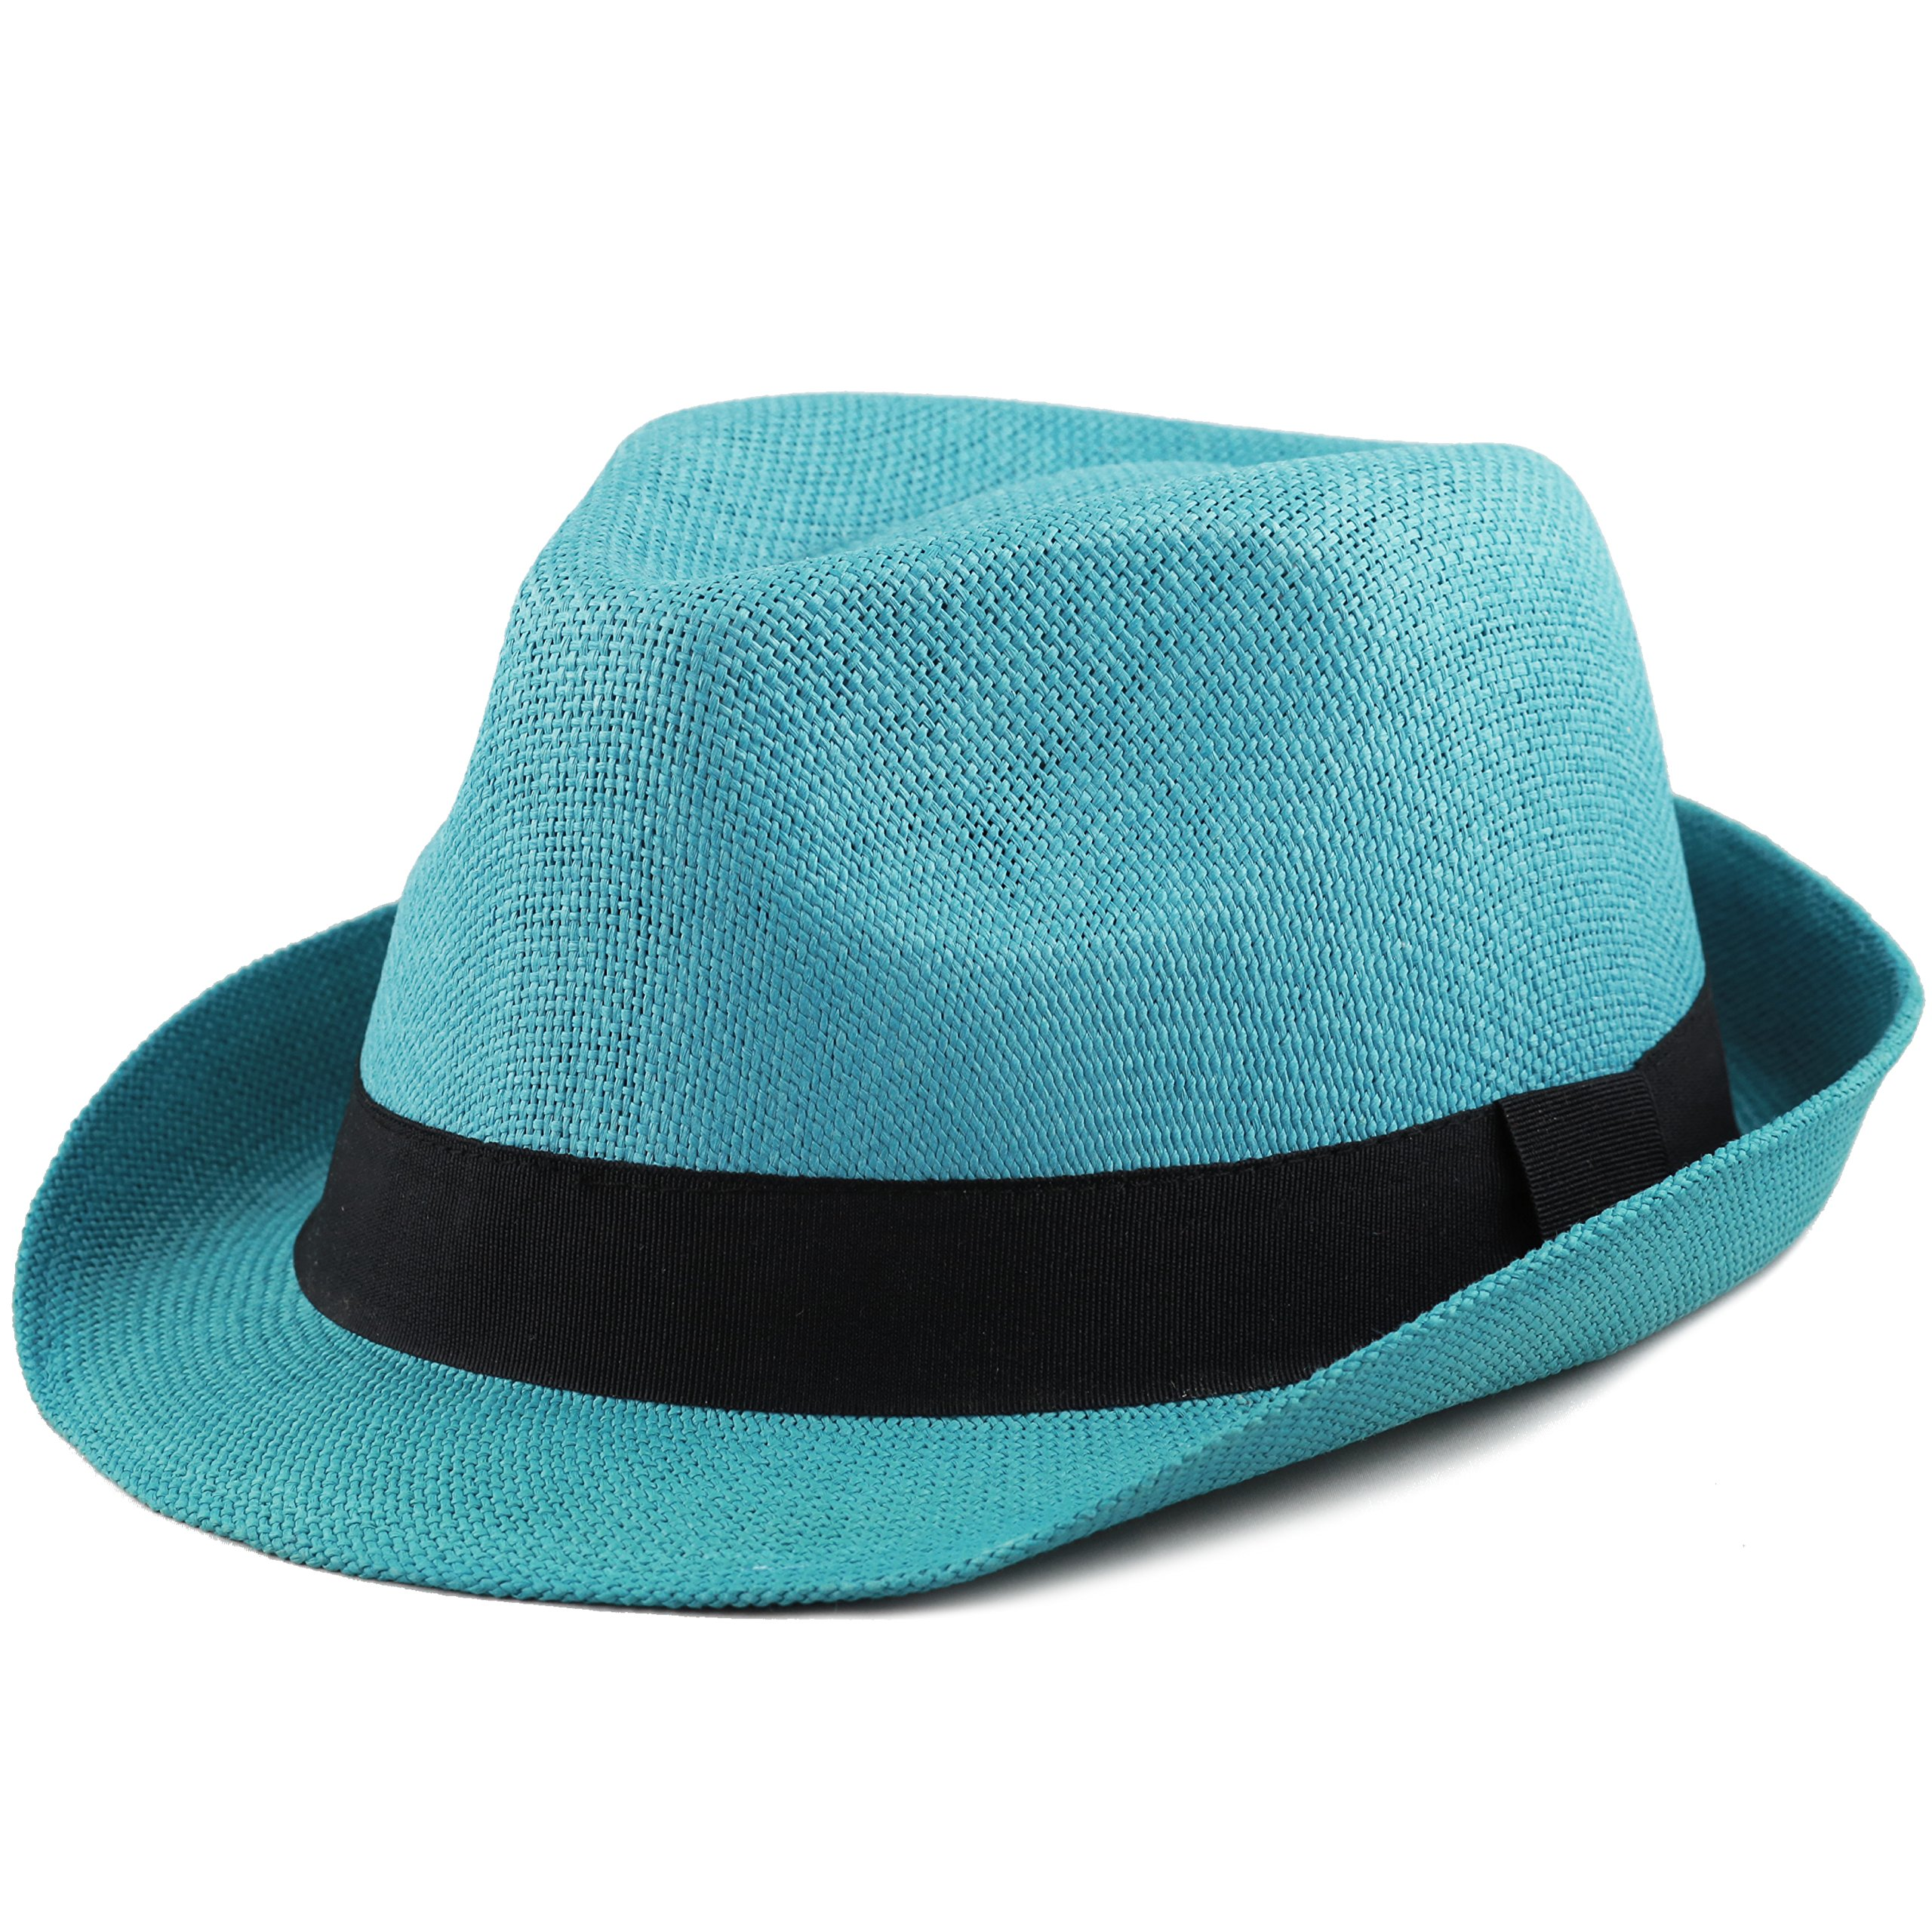 THE HAT DEPOT Unisex Summer Short Brim Straw Fedora Hat (Turquoise)